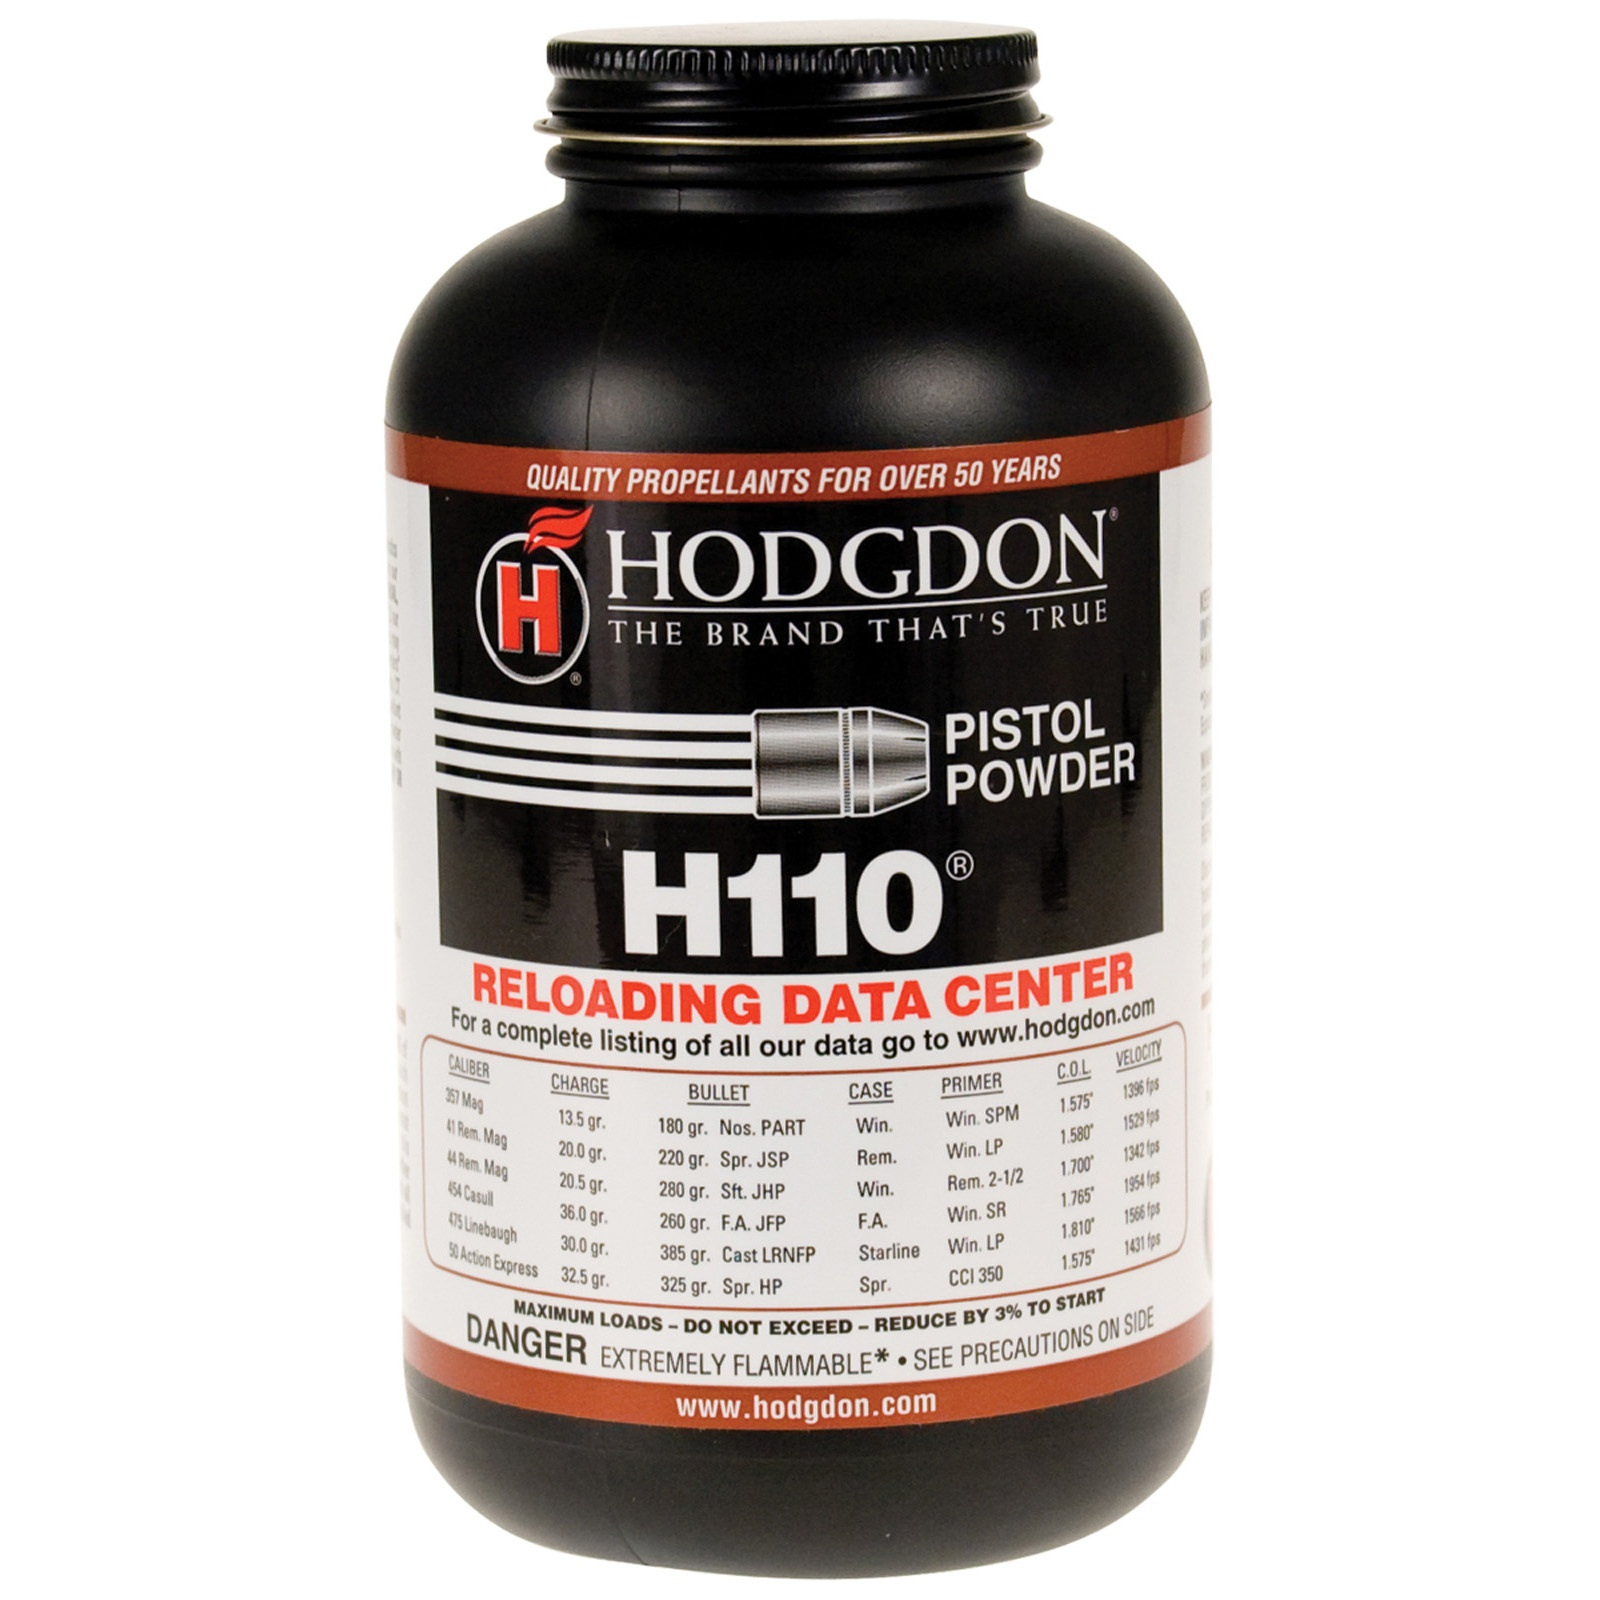 Hodgdon H110 Spherical Shotshell & Handgun Powder 1 lbs